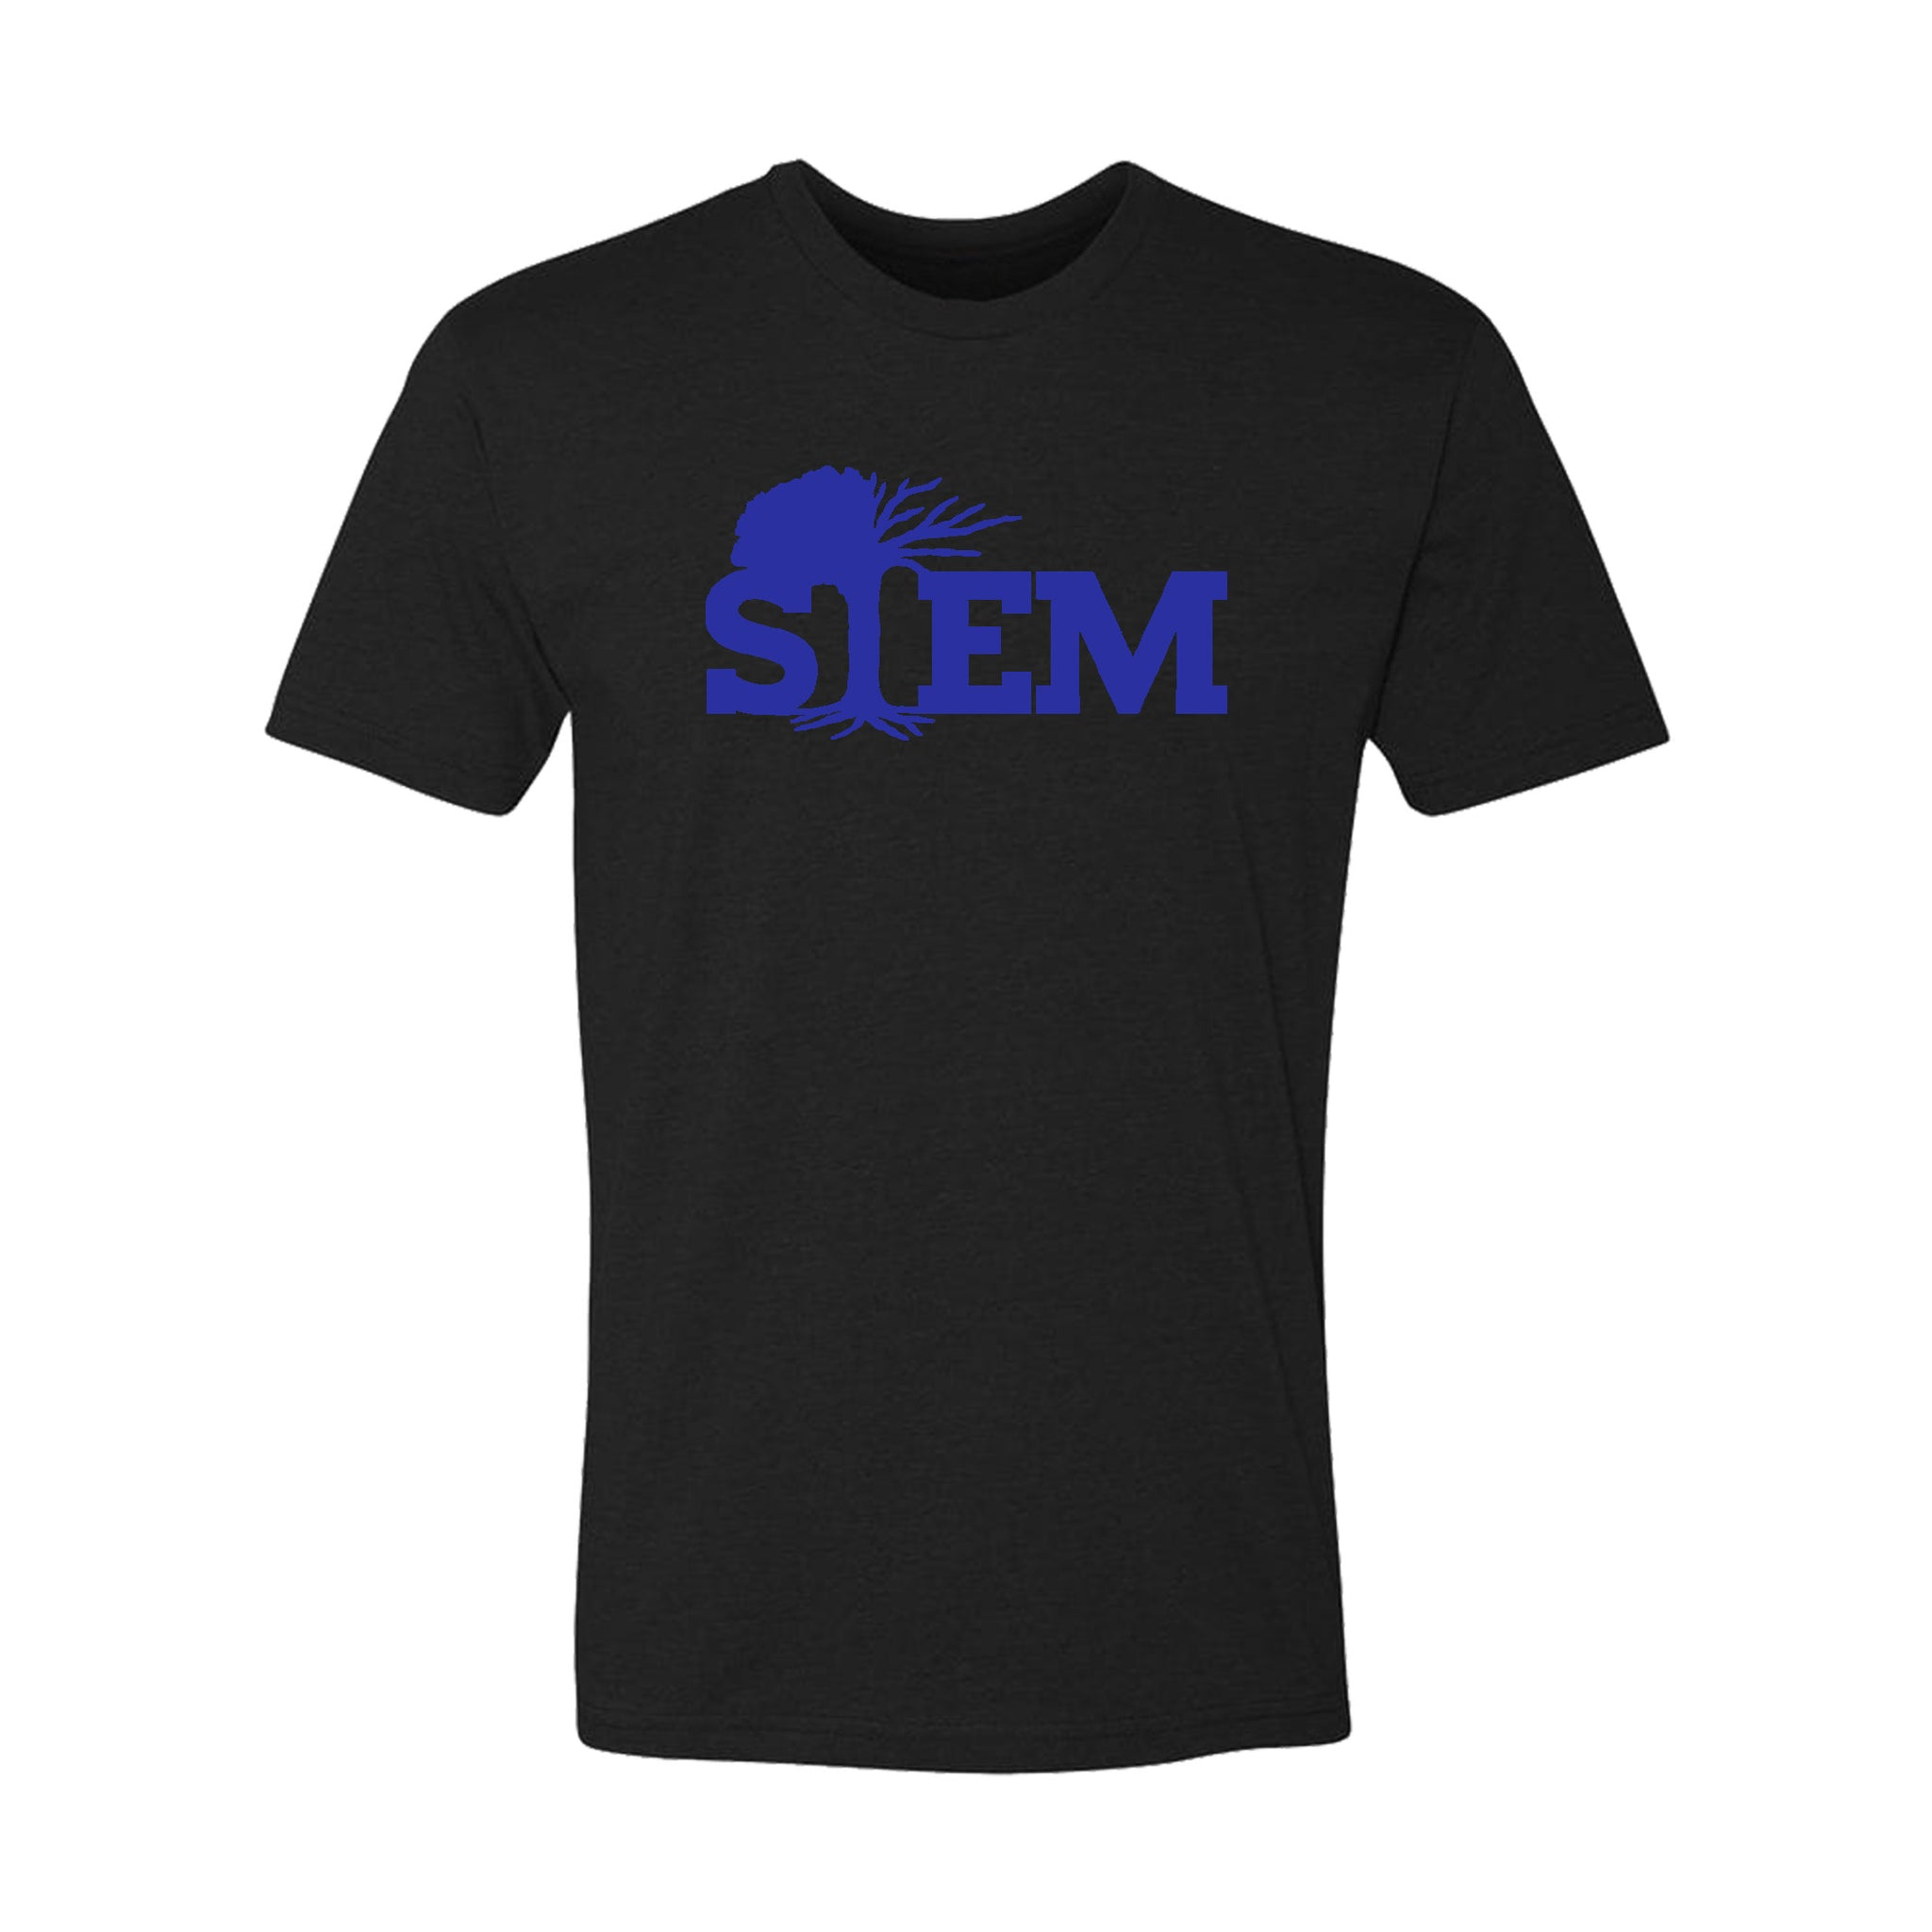 STEM Men's Essential T-Shirt- Black - STEM Clothing Group